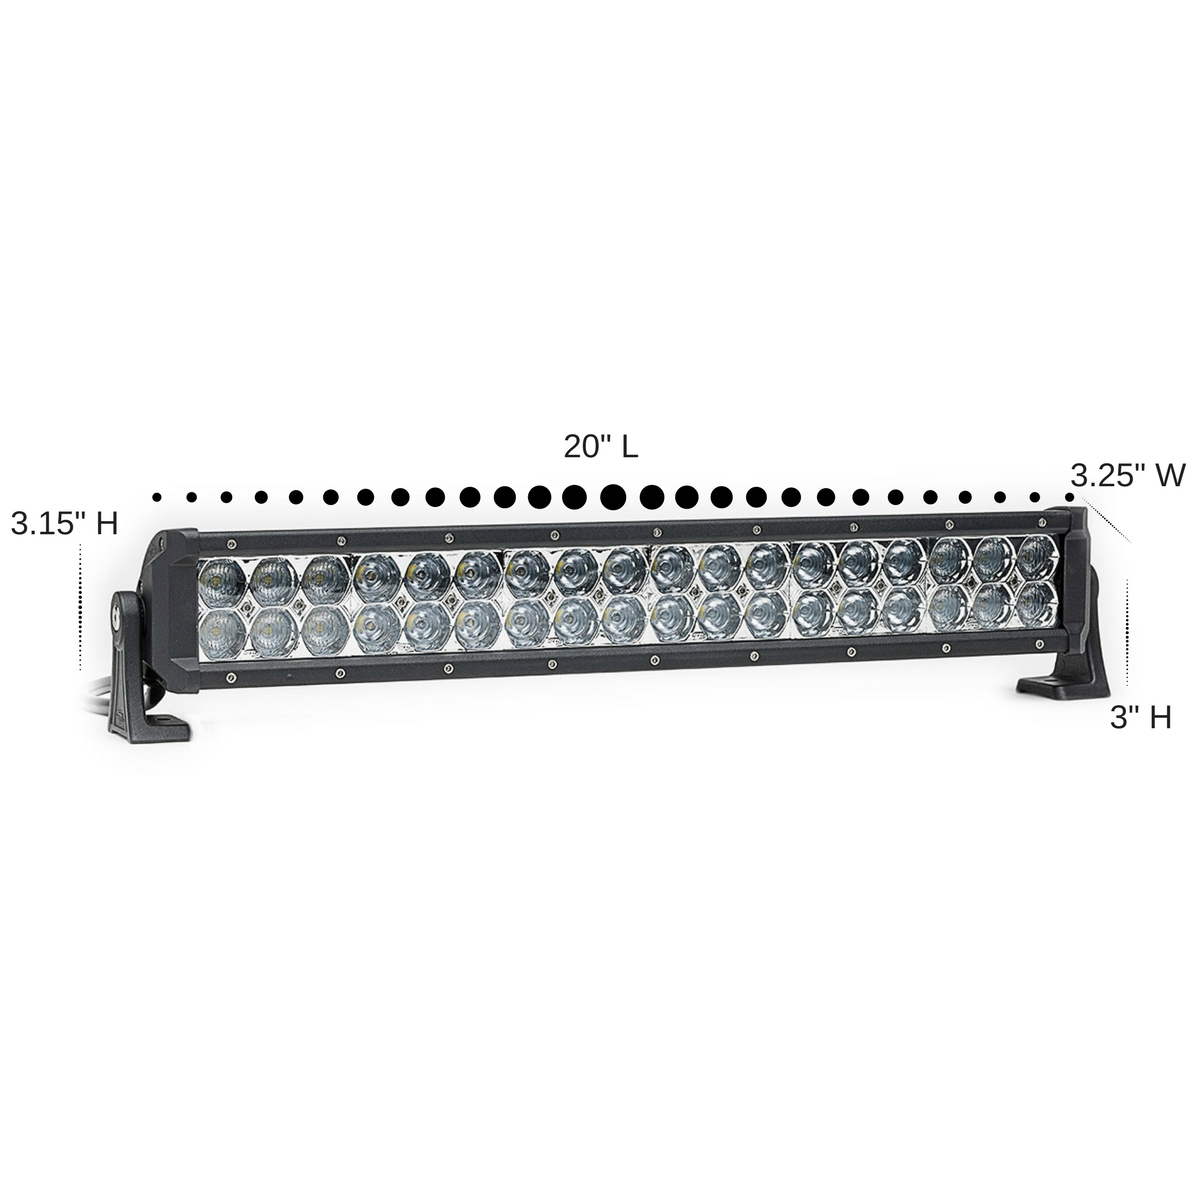 Dual Carbine Hybrid Off Road 20 Inch LED Light Bar Dimensions